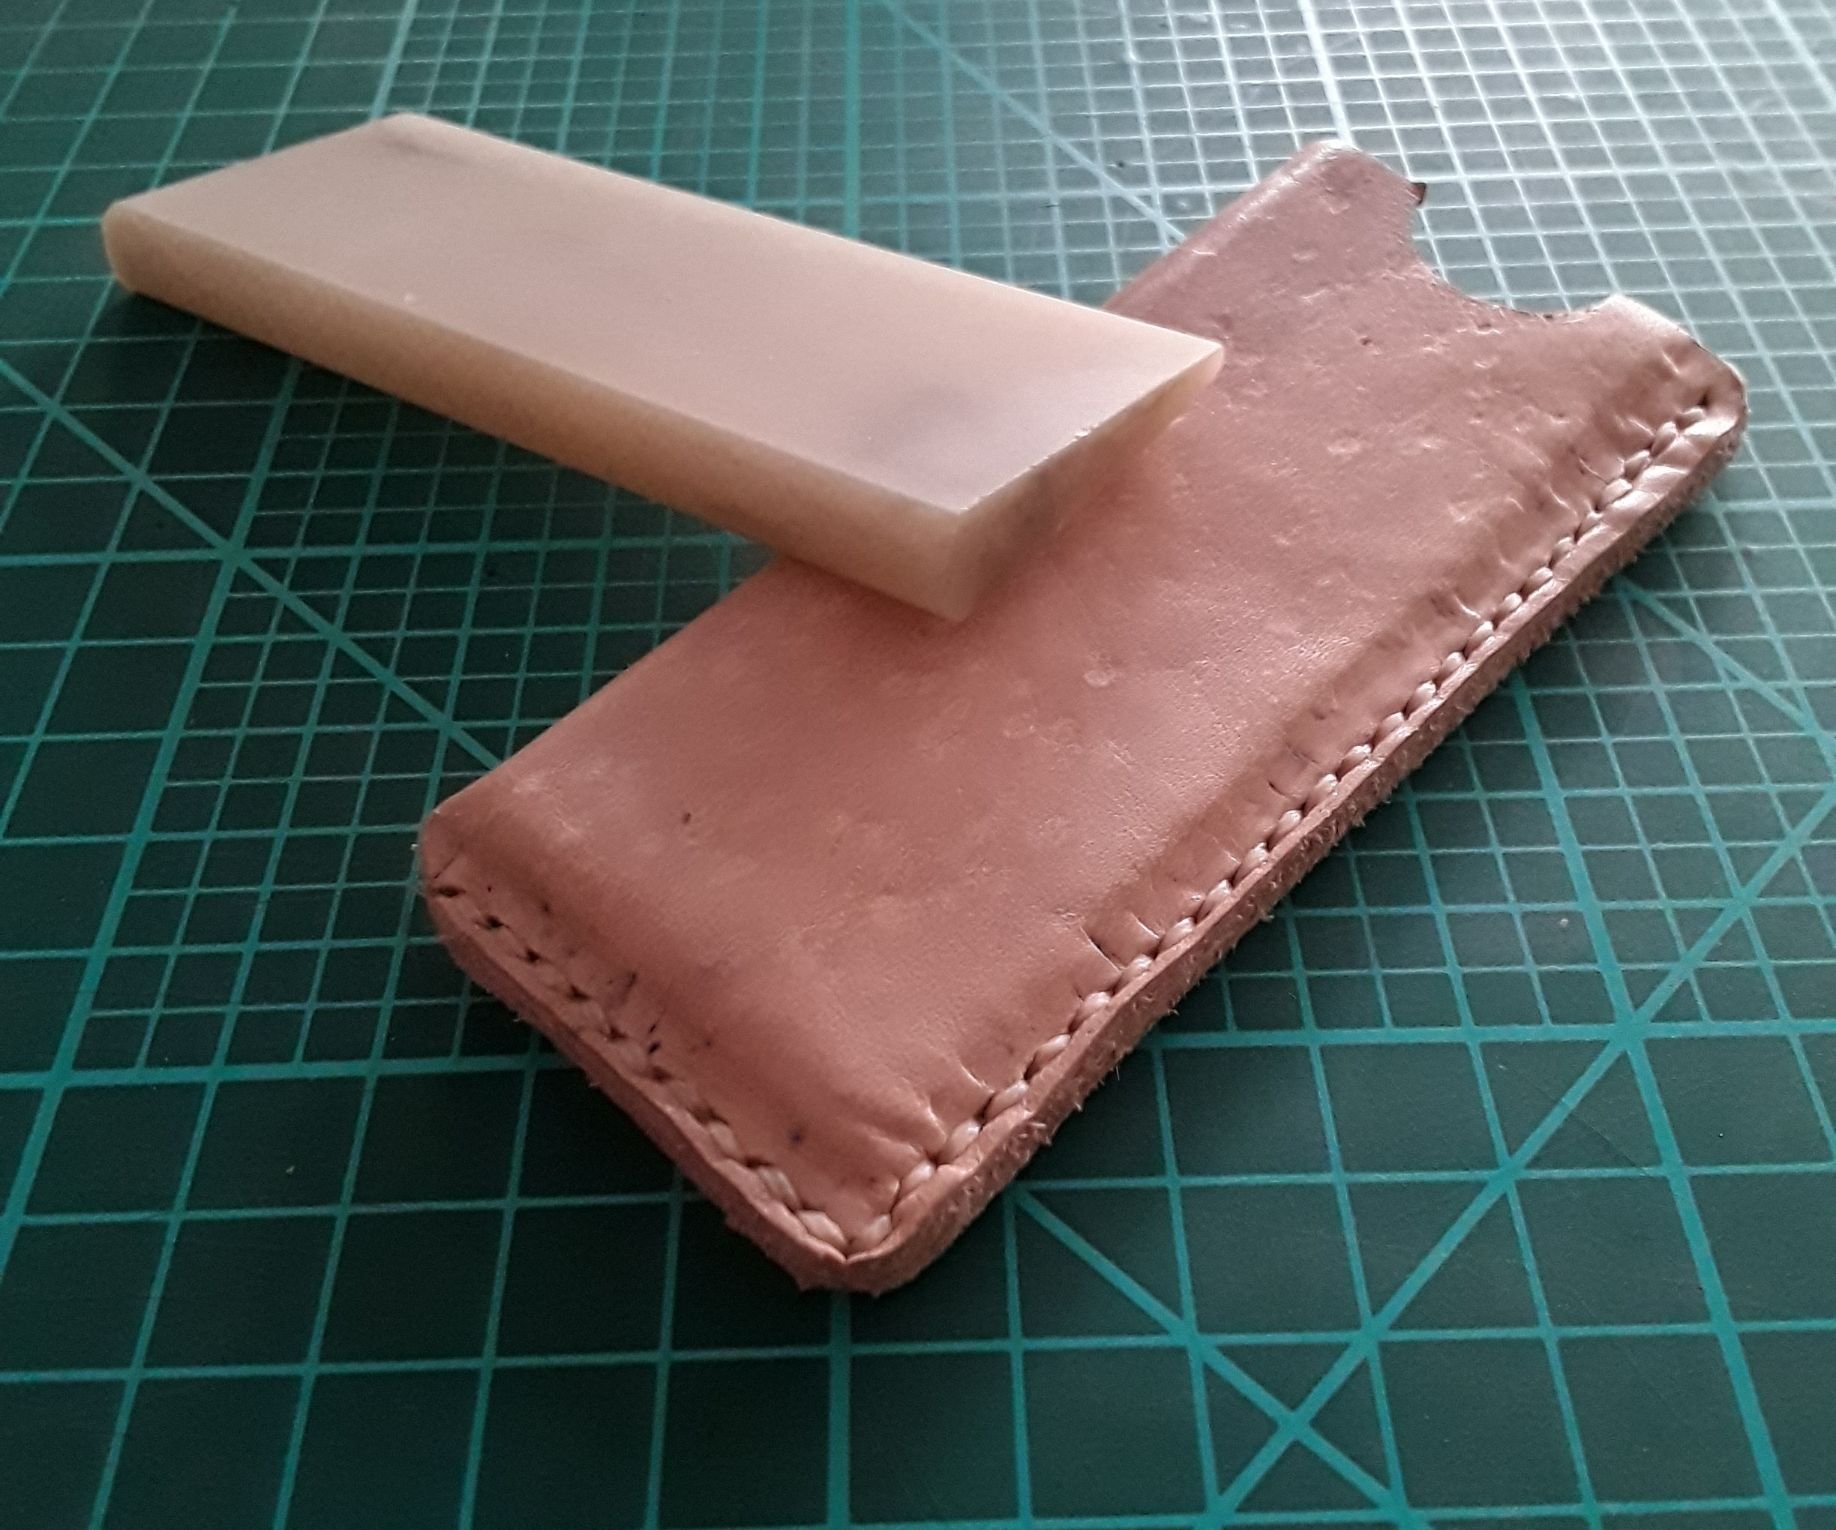 Leather Sheaths for Small Articles